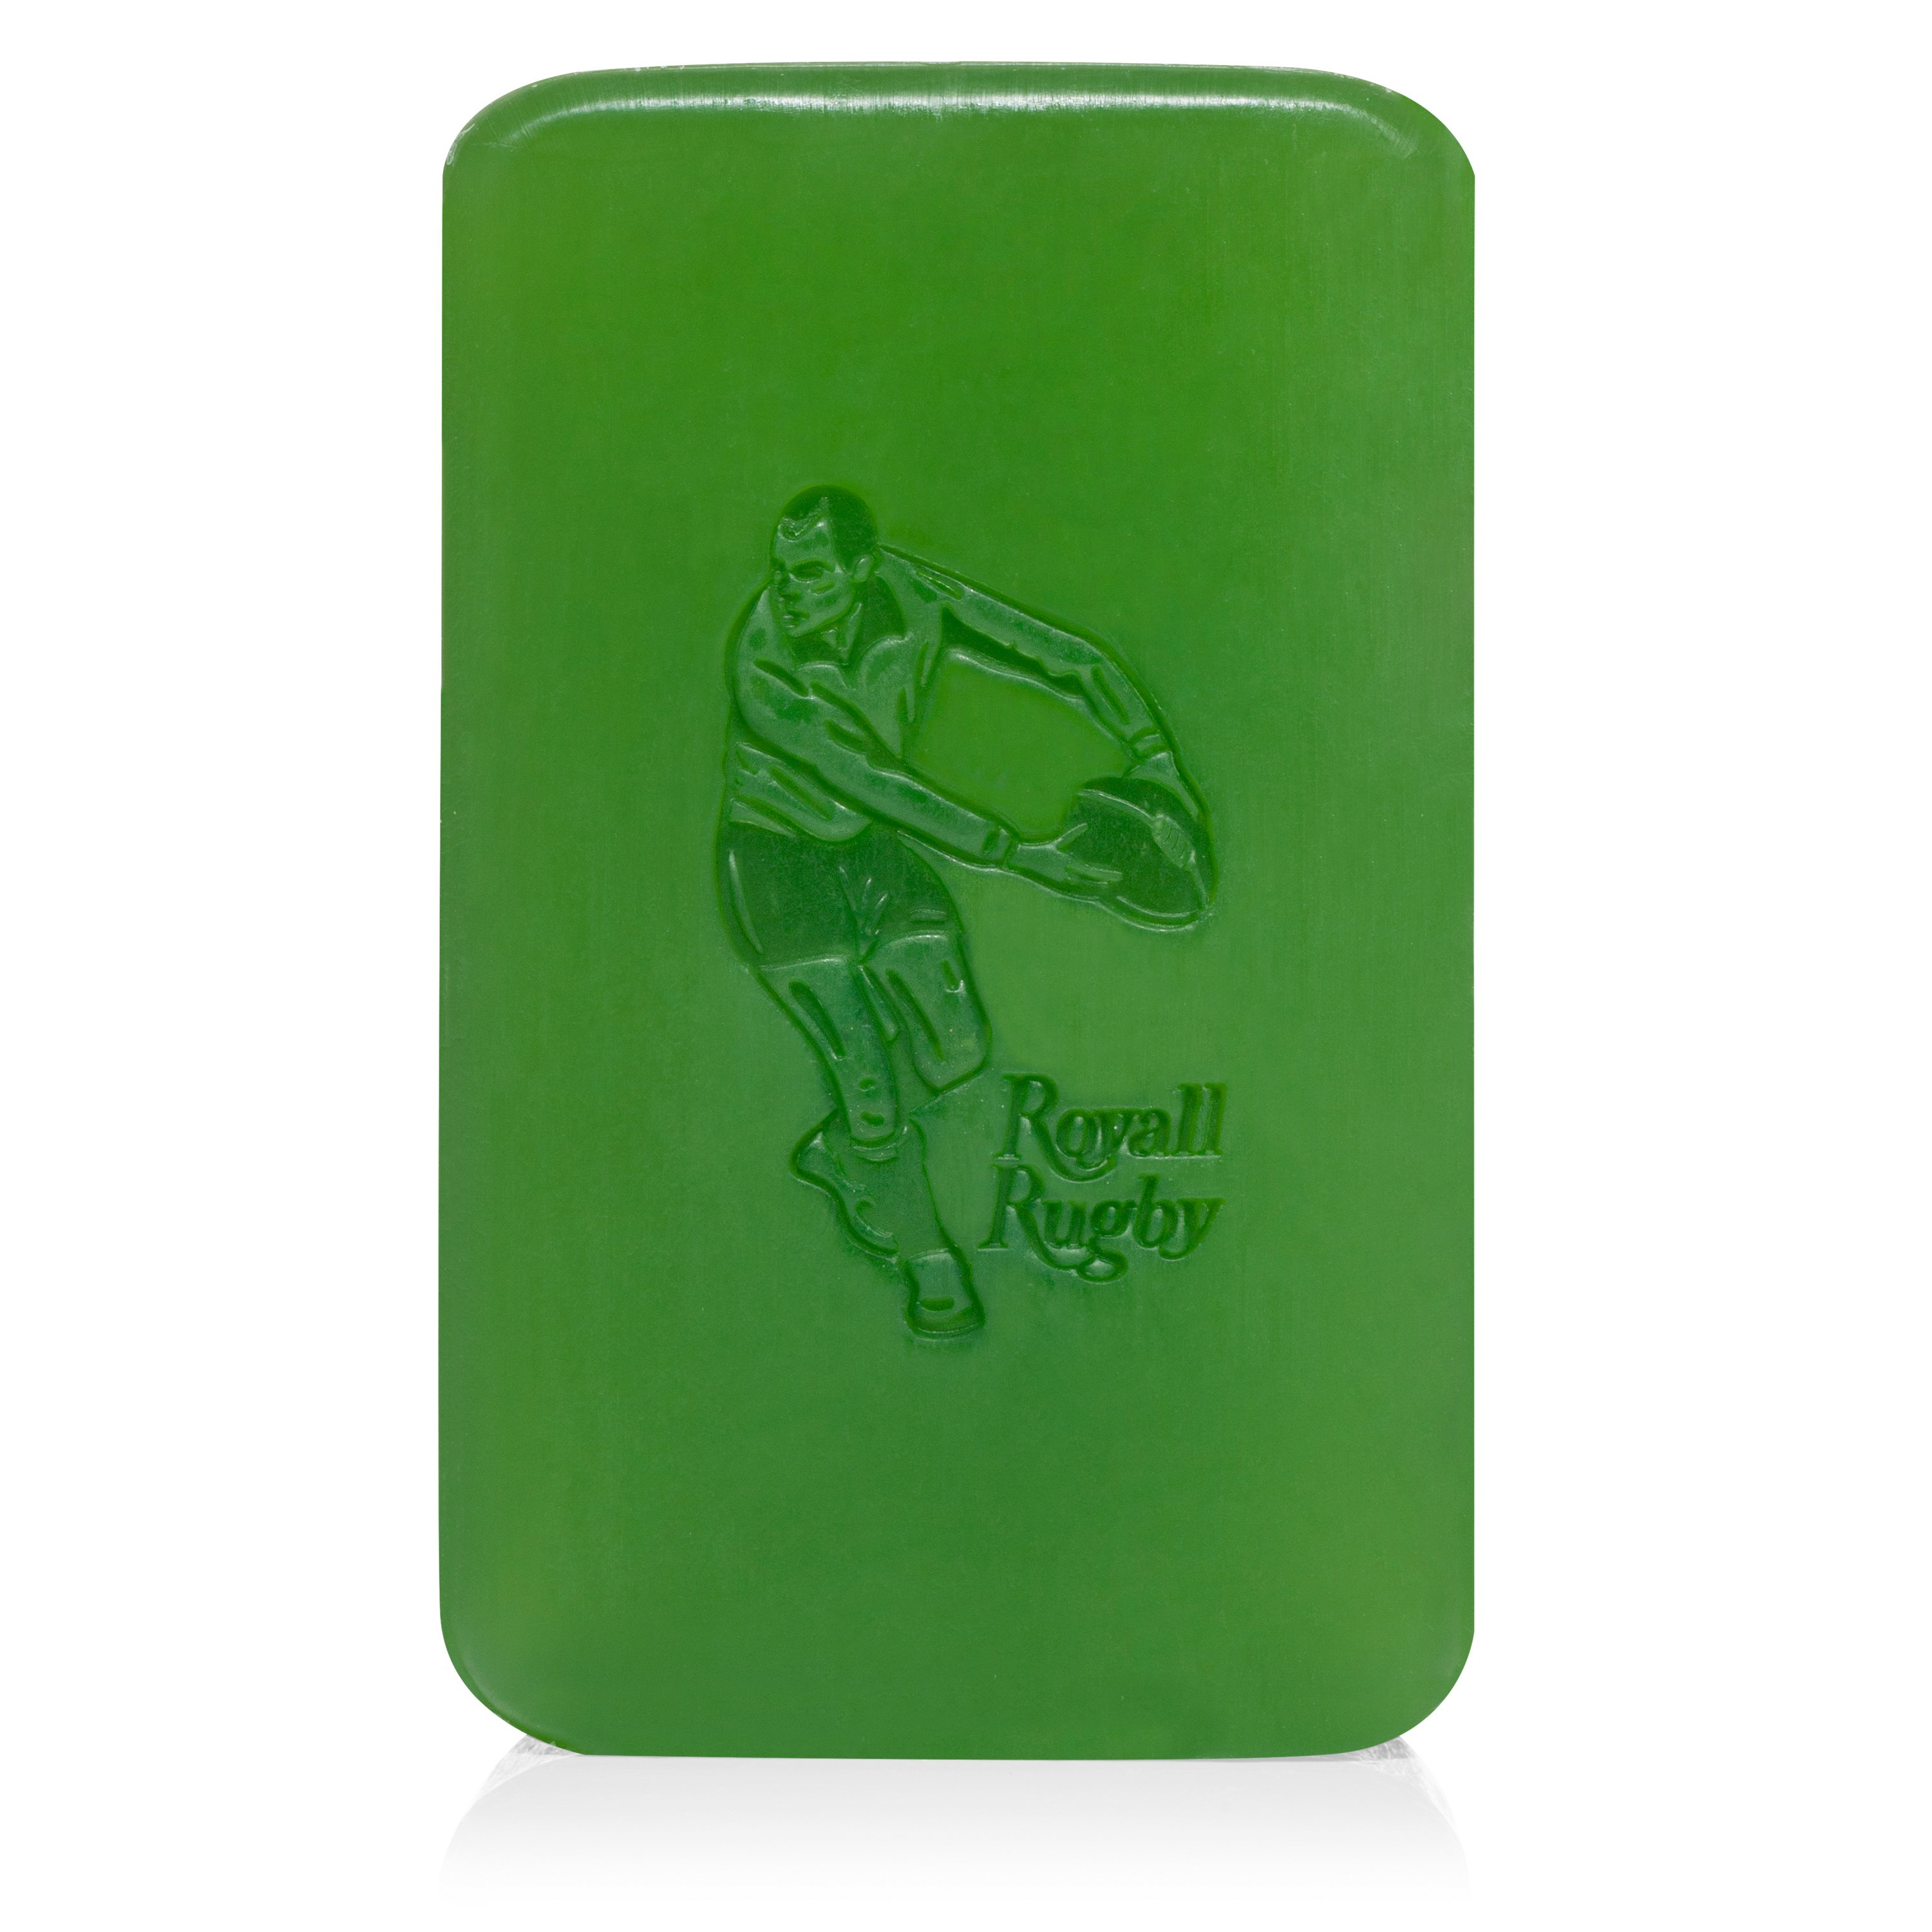 Royall Rugby Soap 224g - Made in the USA